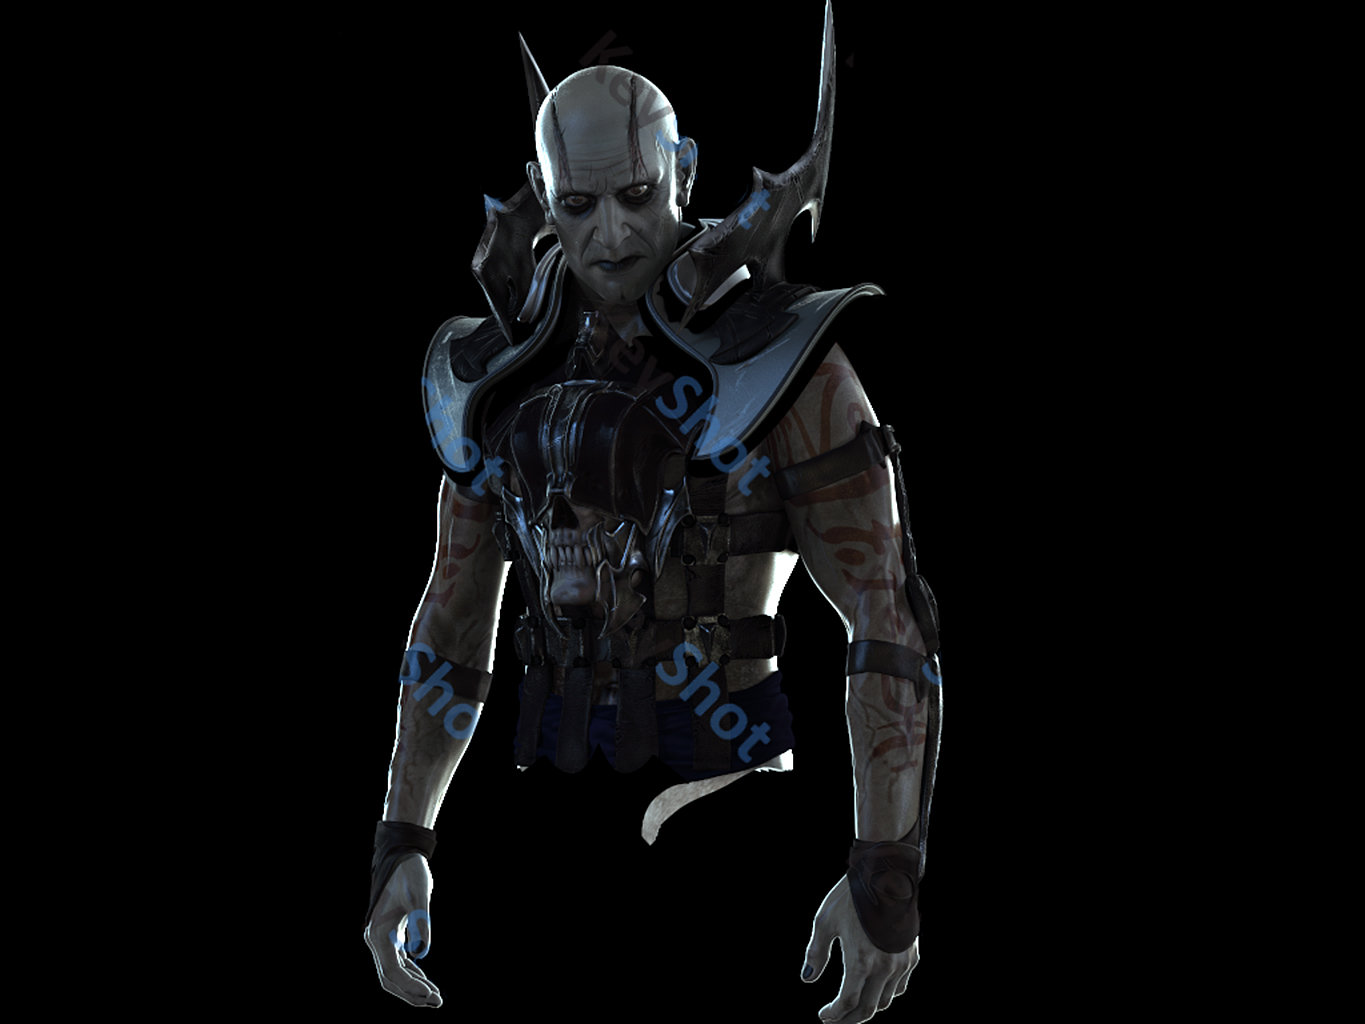 Solomon gaitan quan chi ks wip2nd pose